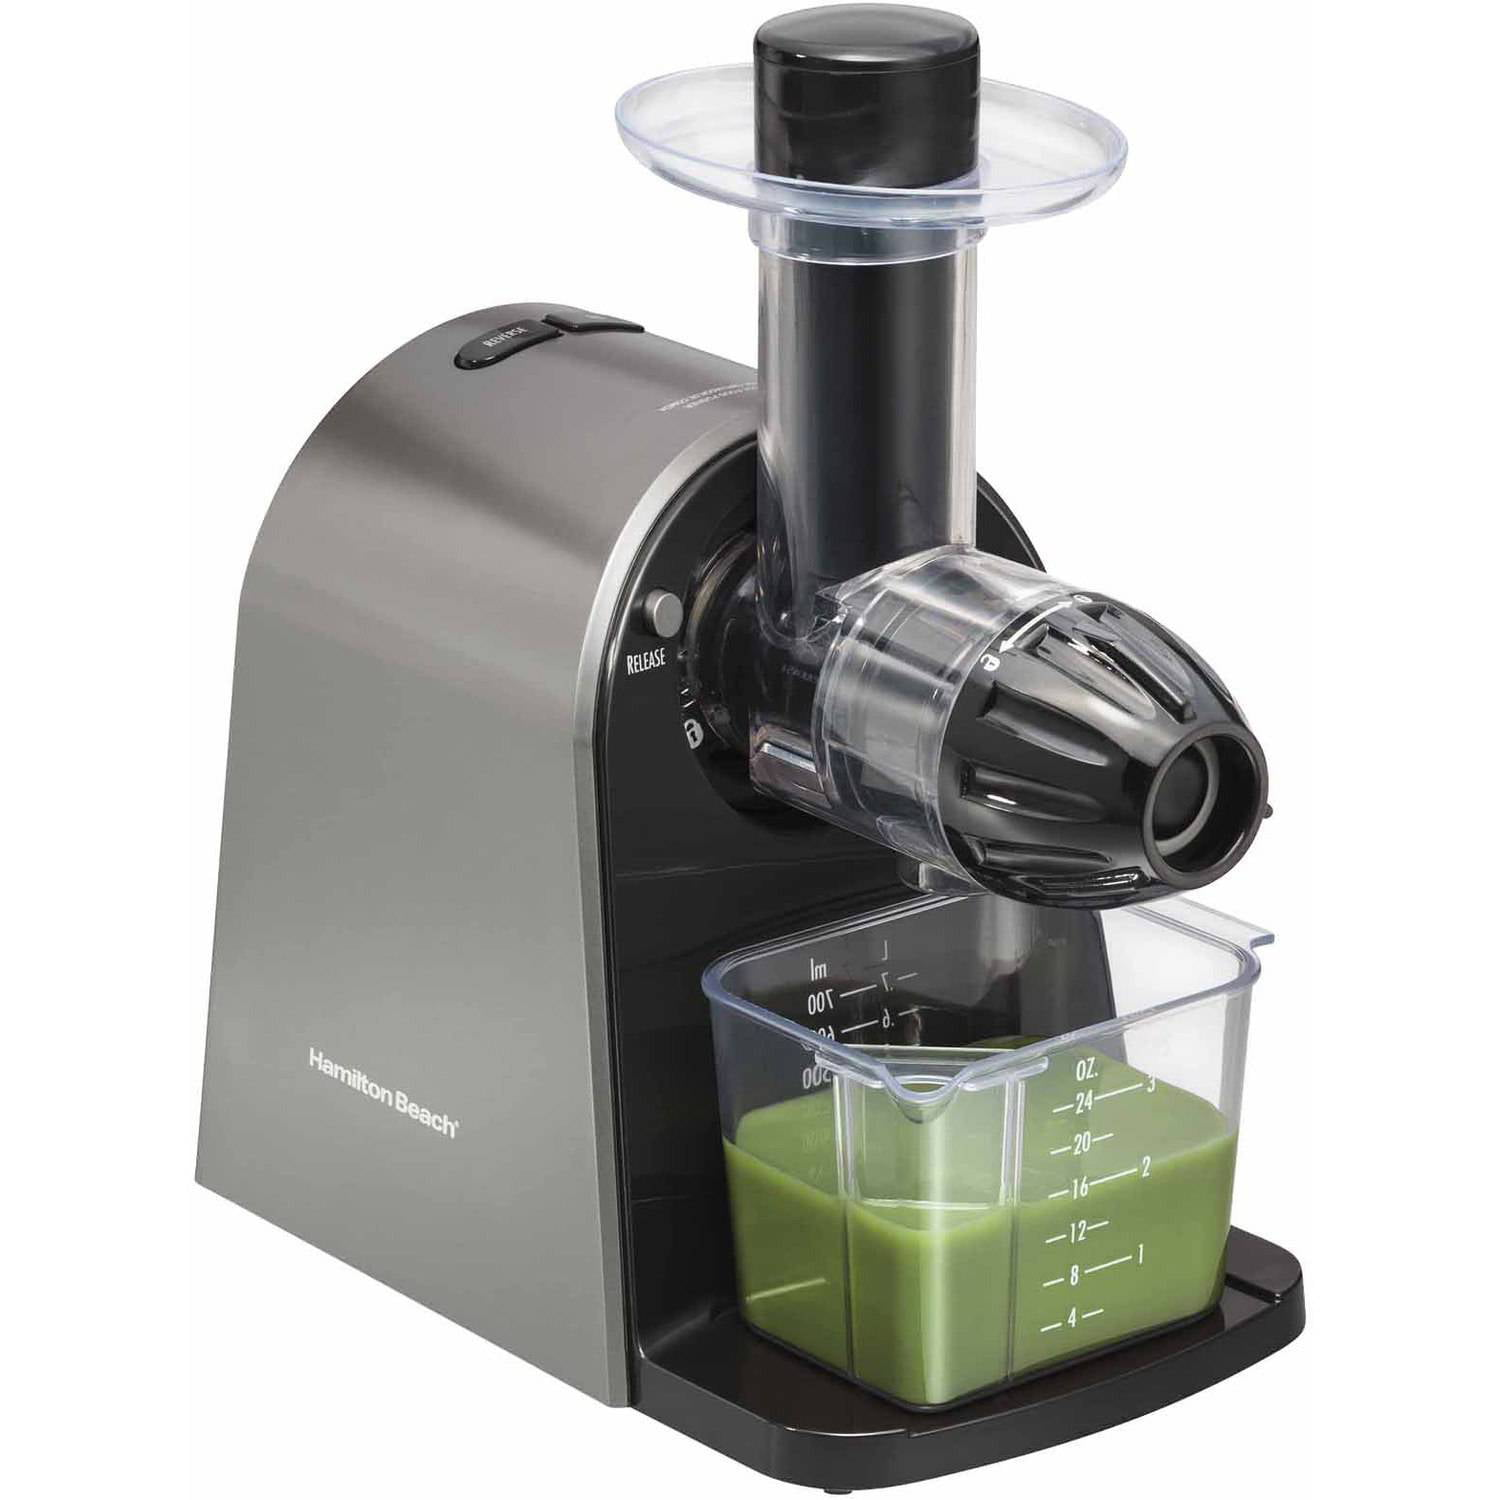 Slow Juicer What Is : Cold Press Juicer Machine - Masticating Juicer Slow Juice Extractor Maker Electric Juicing ...